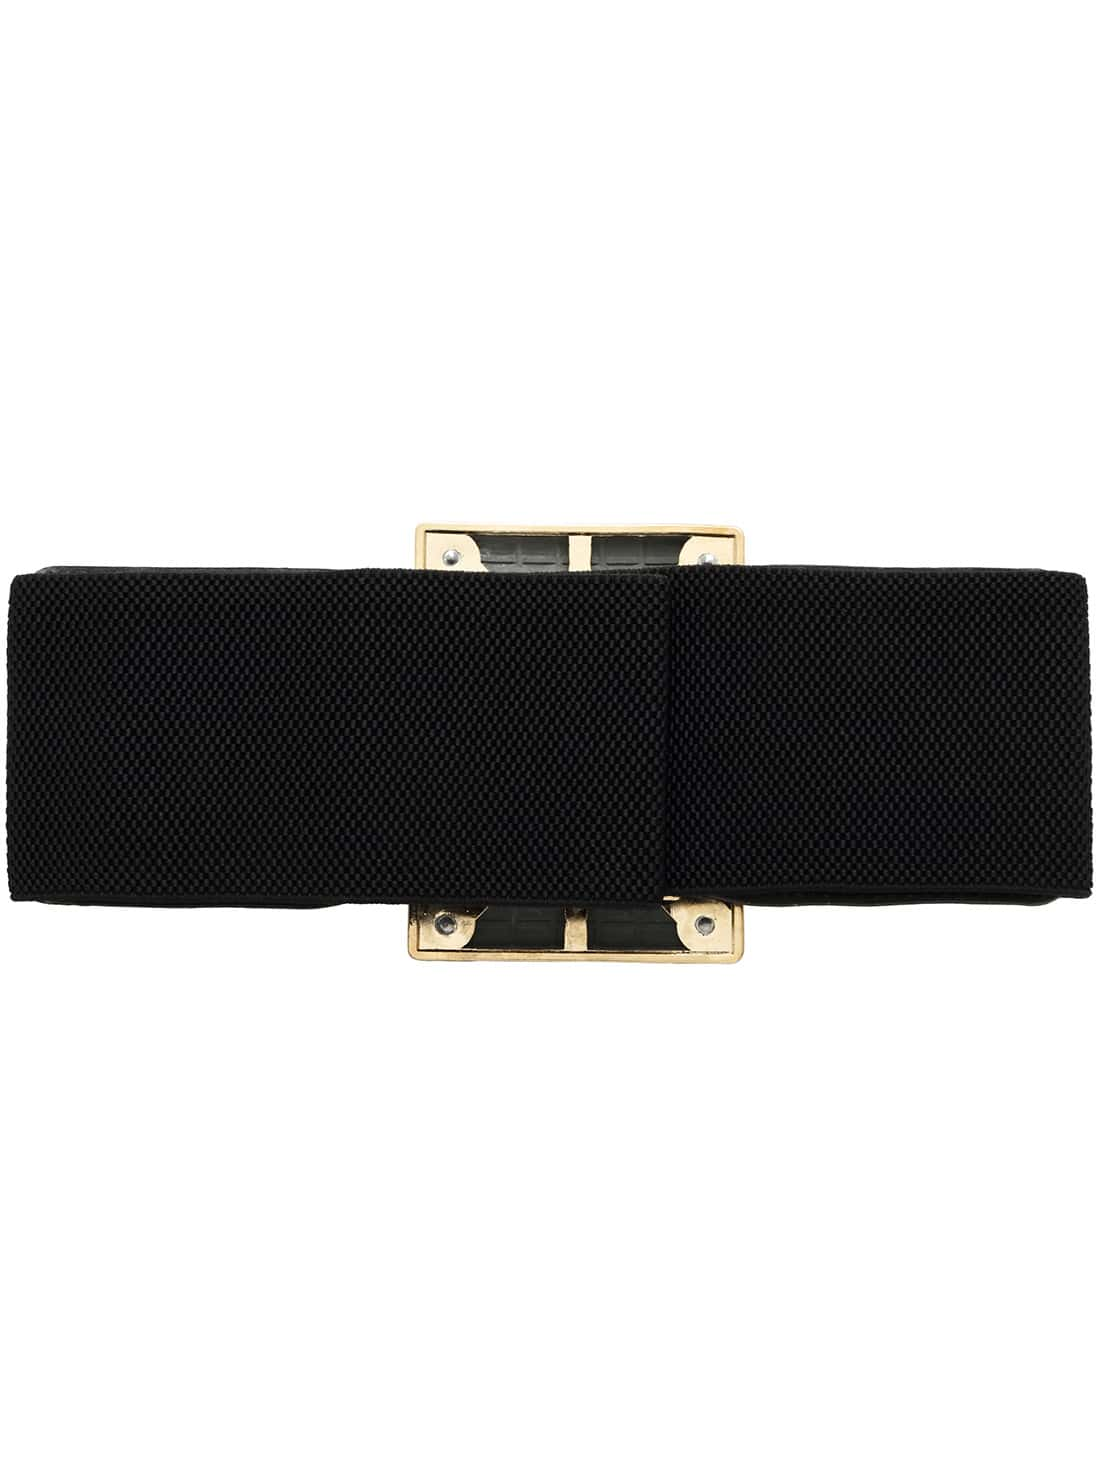 black metal buckle wide belt shein sheinside